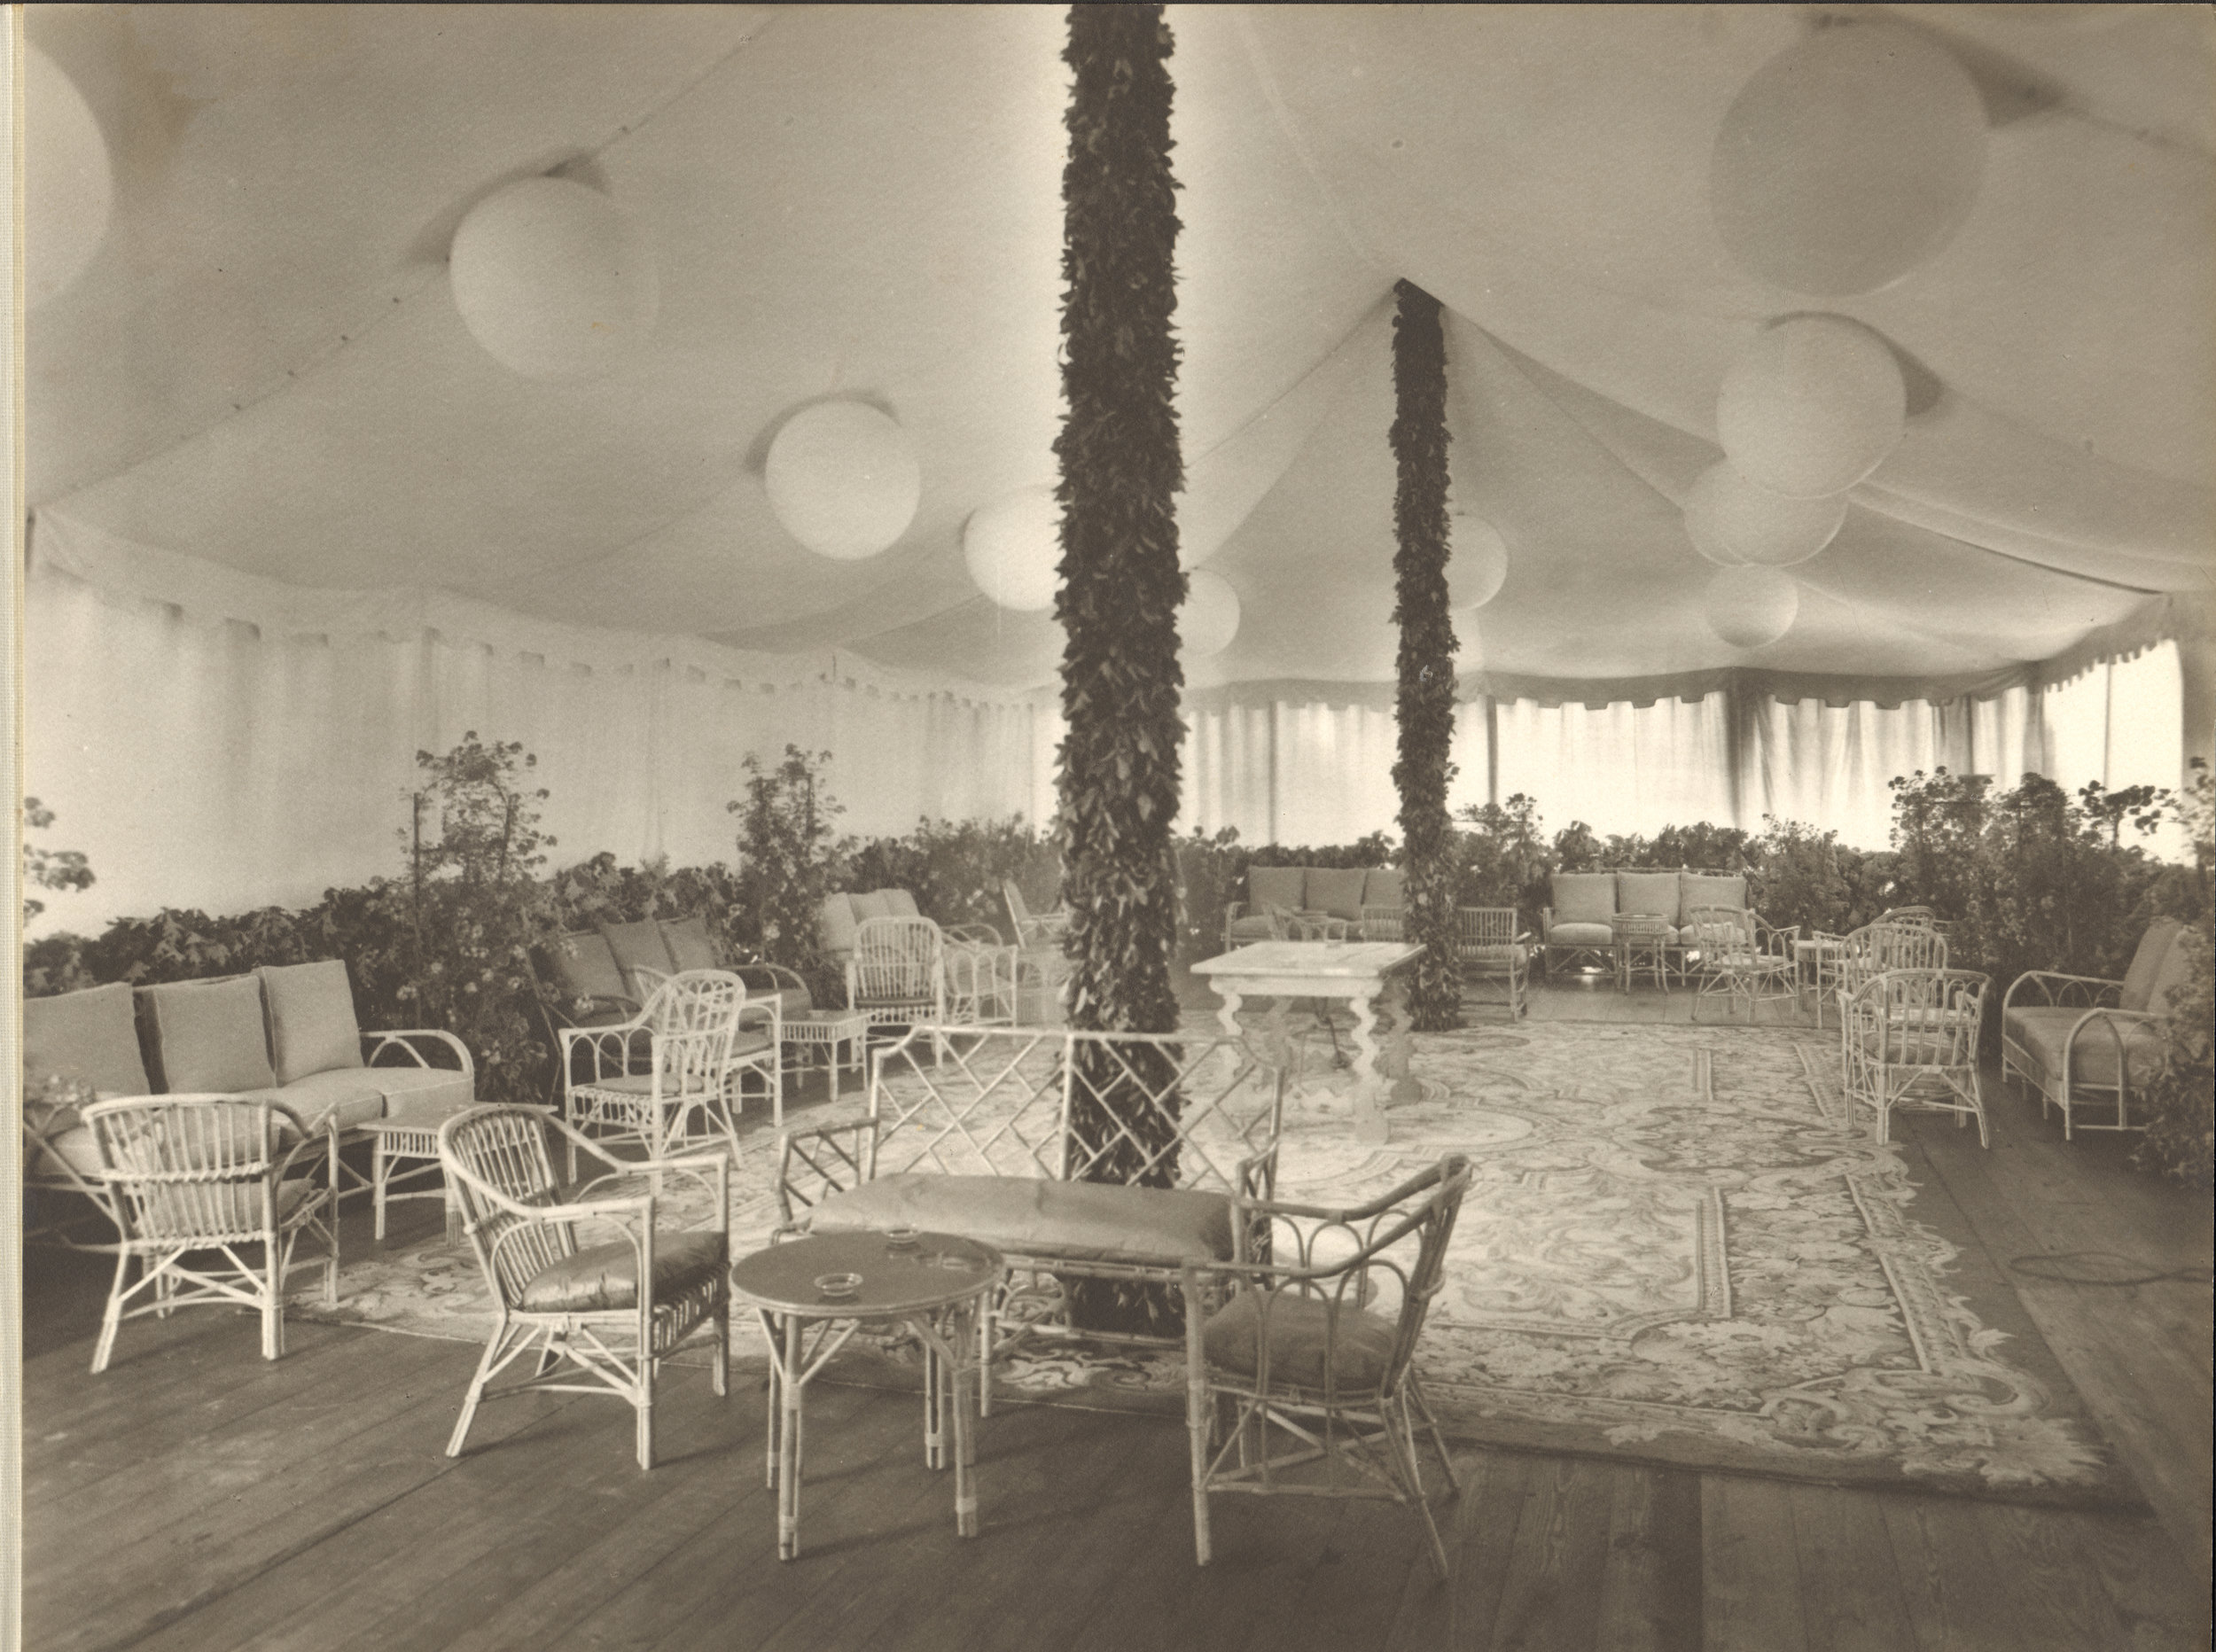 Tented Reception - Early 1900's